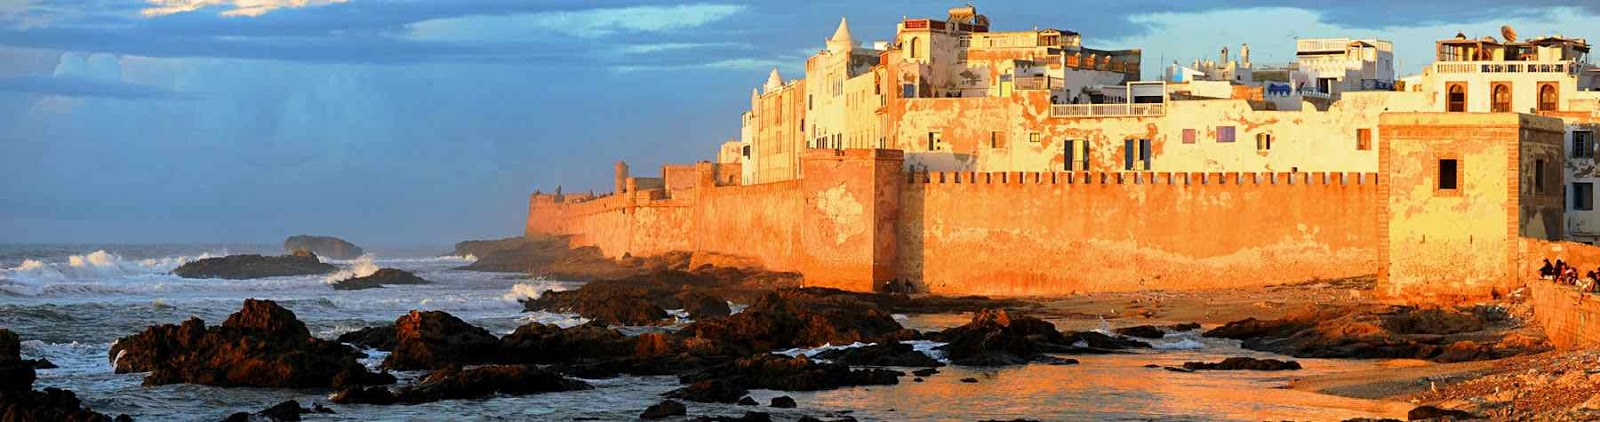 EXCURTIONS MARRAKECH ESSOUIRA morocco dreams adventure tours morocco